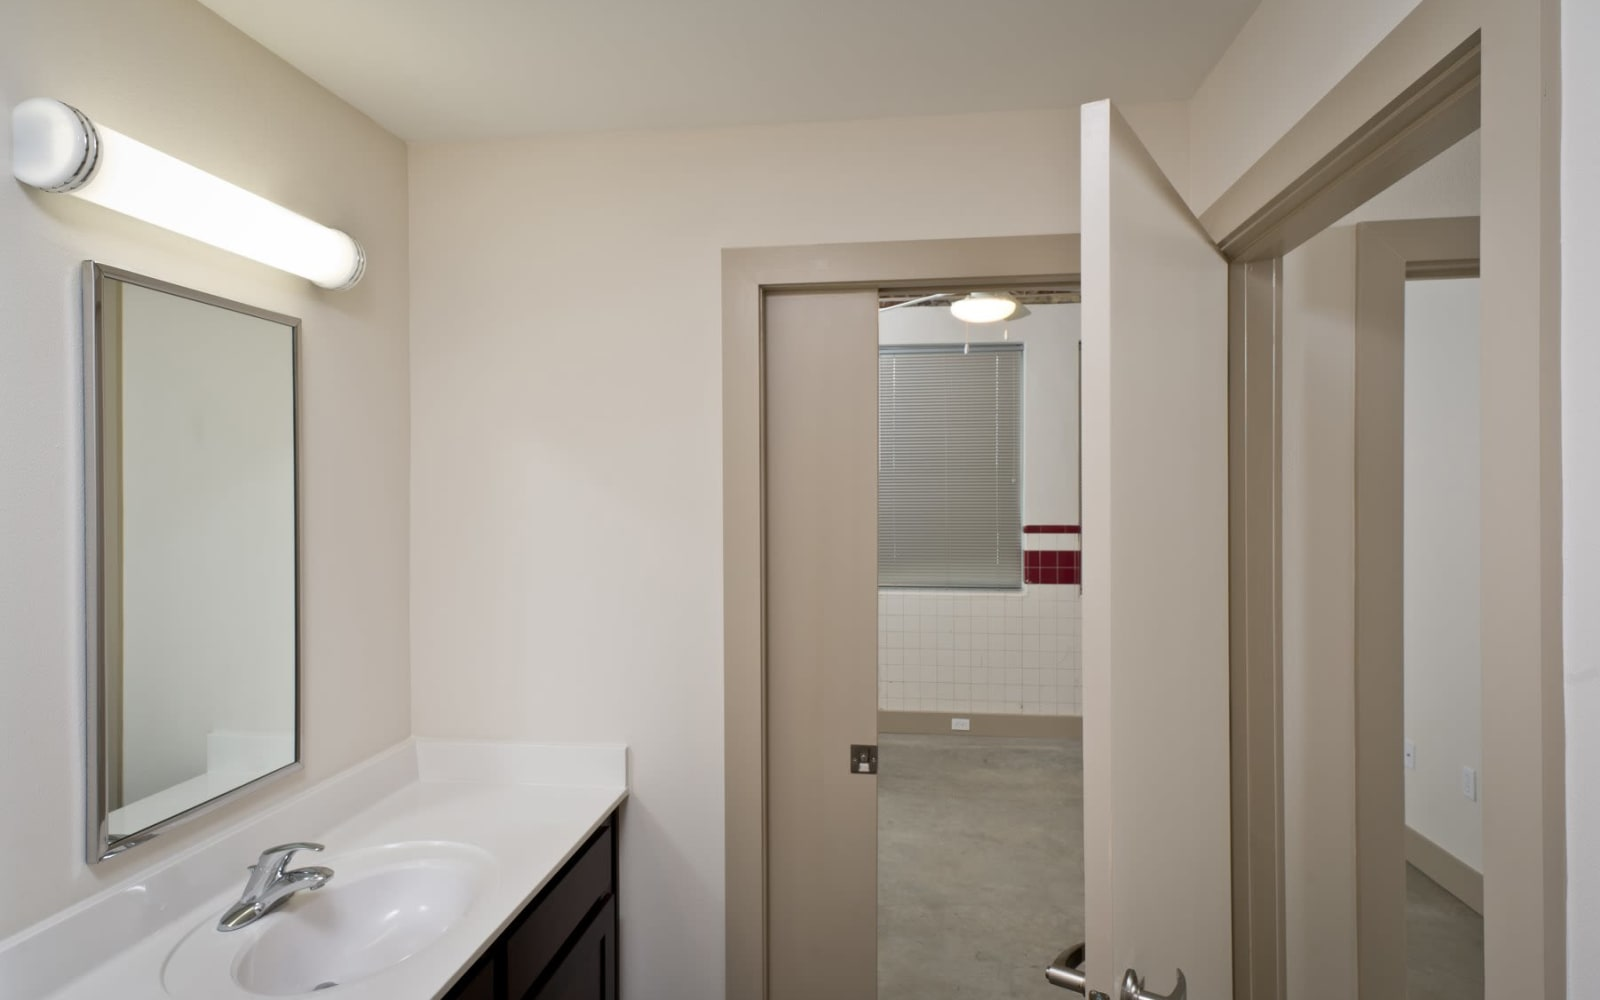 Bright, clean bathroom at Gold Seal Lofts in New Orleans, Louisiana